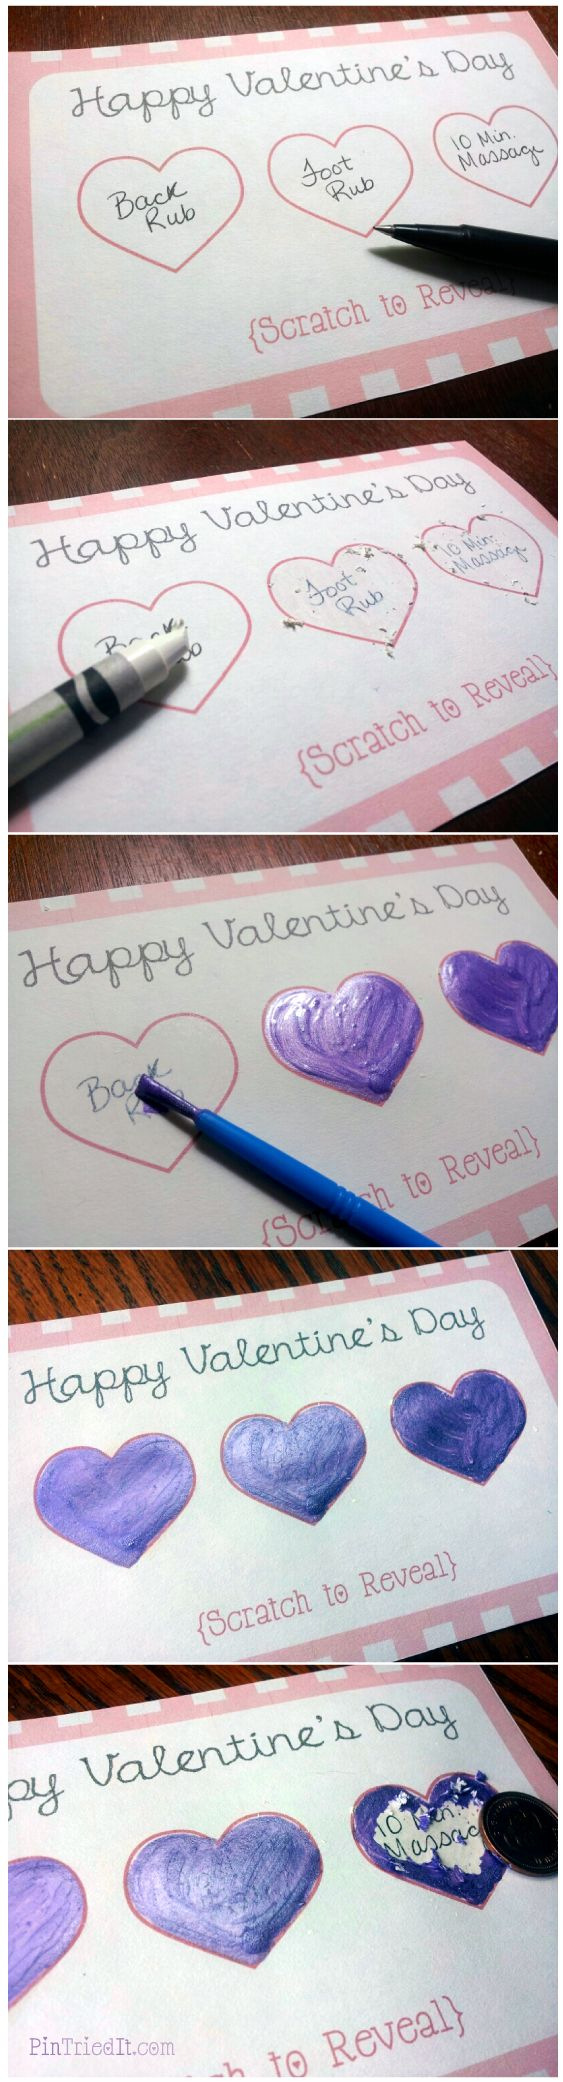 valentines day scratch off ticket - Homemade Christmas Gifts For Boyfriend